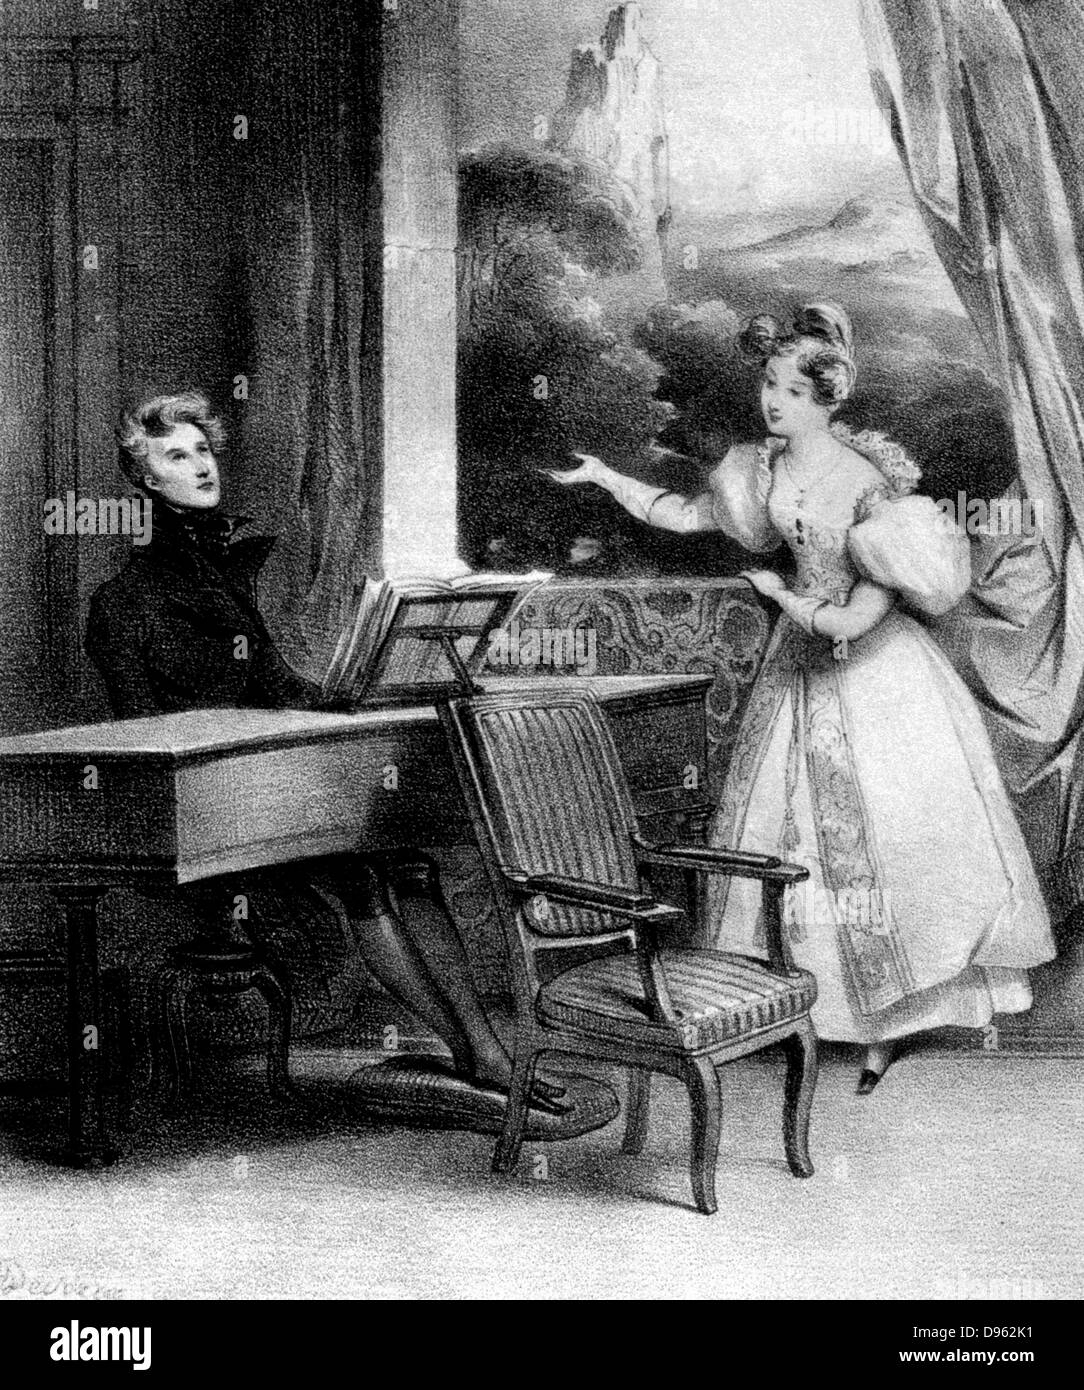 Pianist at the keyboard. 19th century lithograph - Stock Image